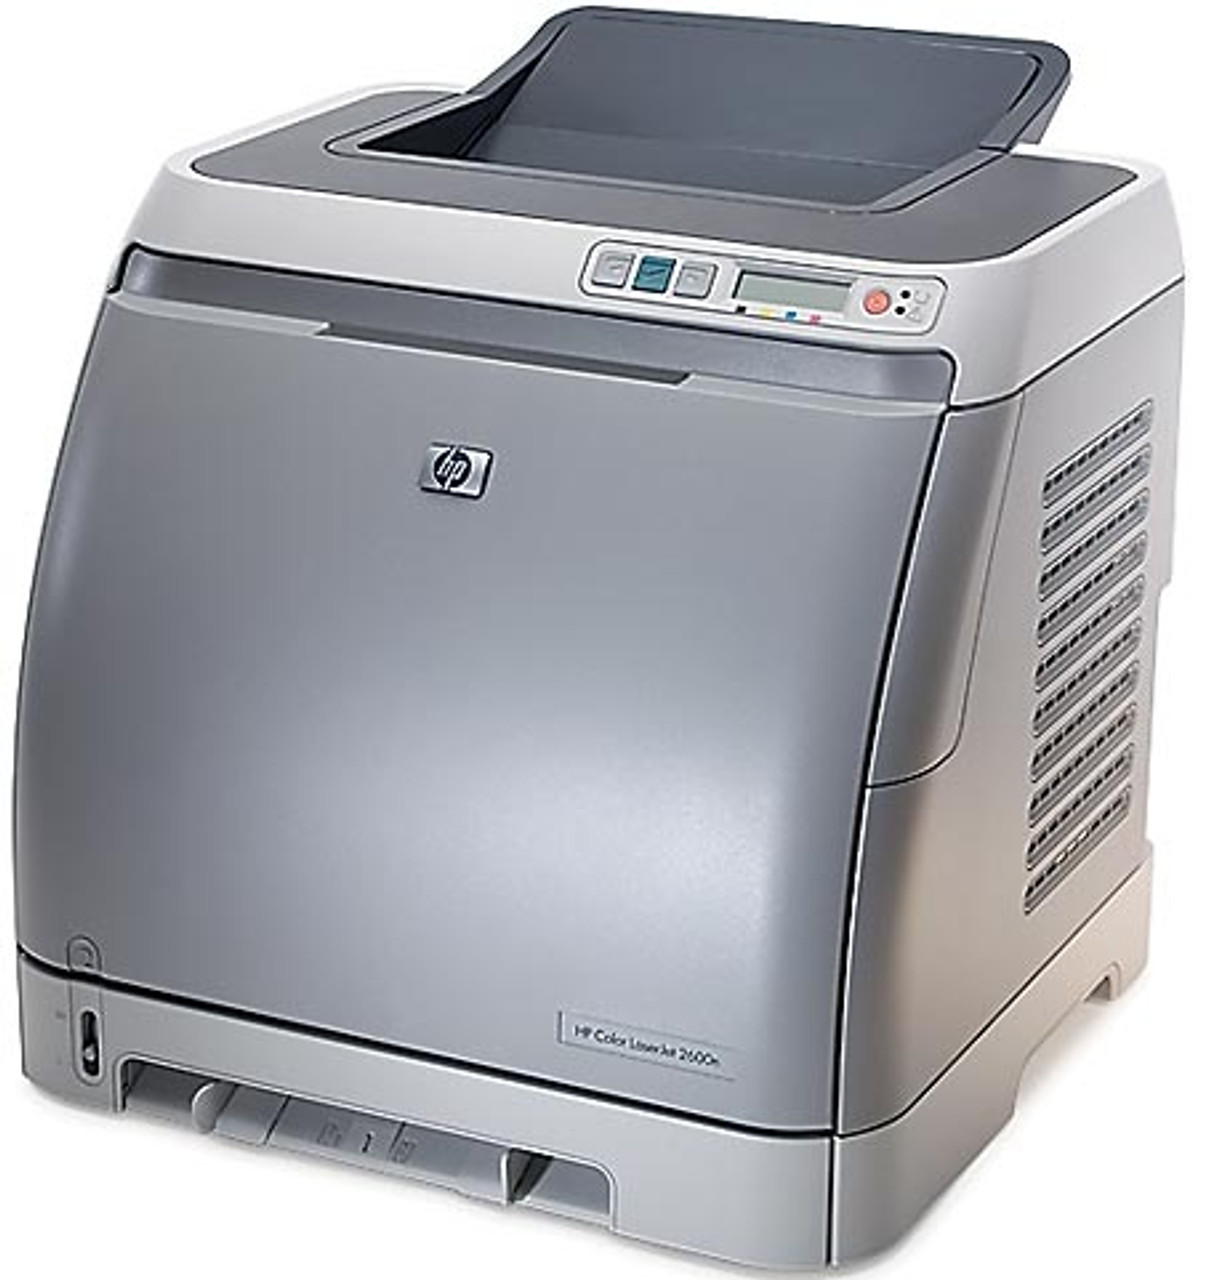 HP Color LaserJet 2600n - Q6455A -  HP Laser Printer for sale